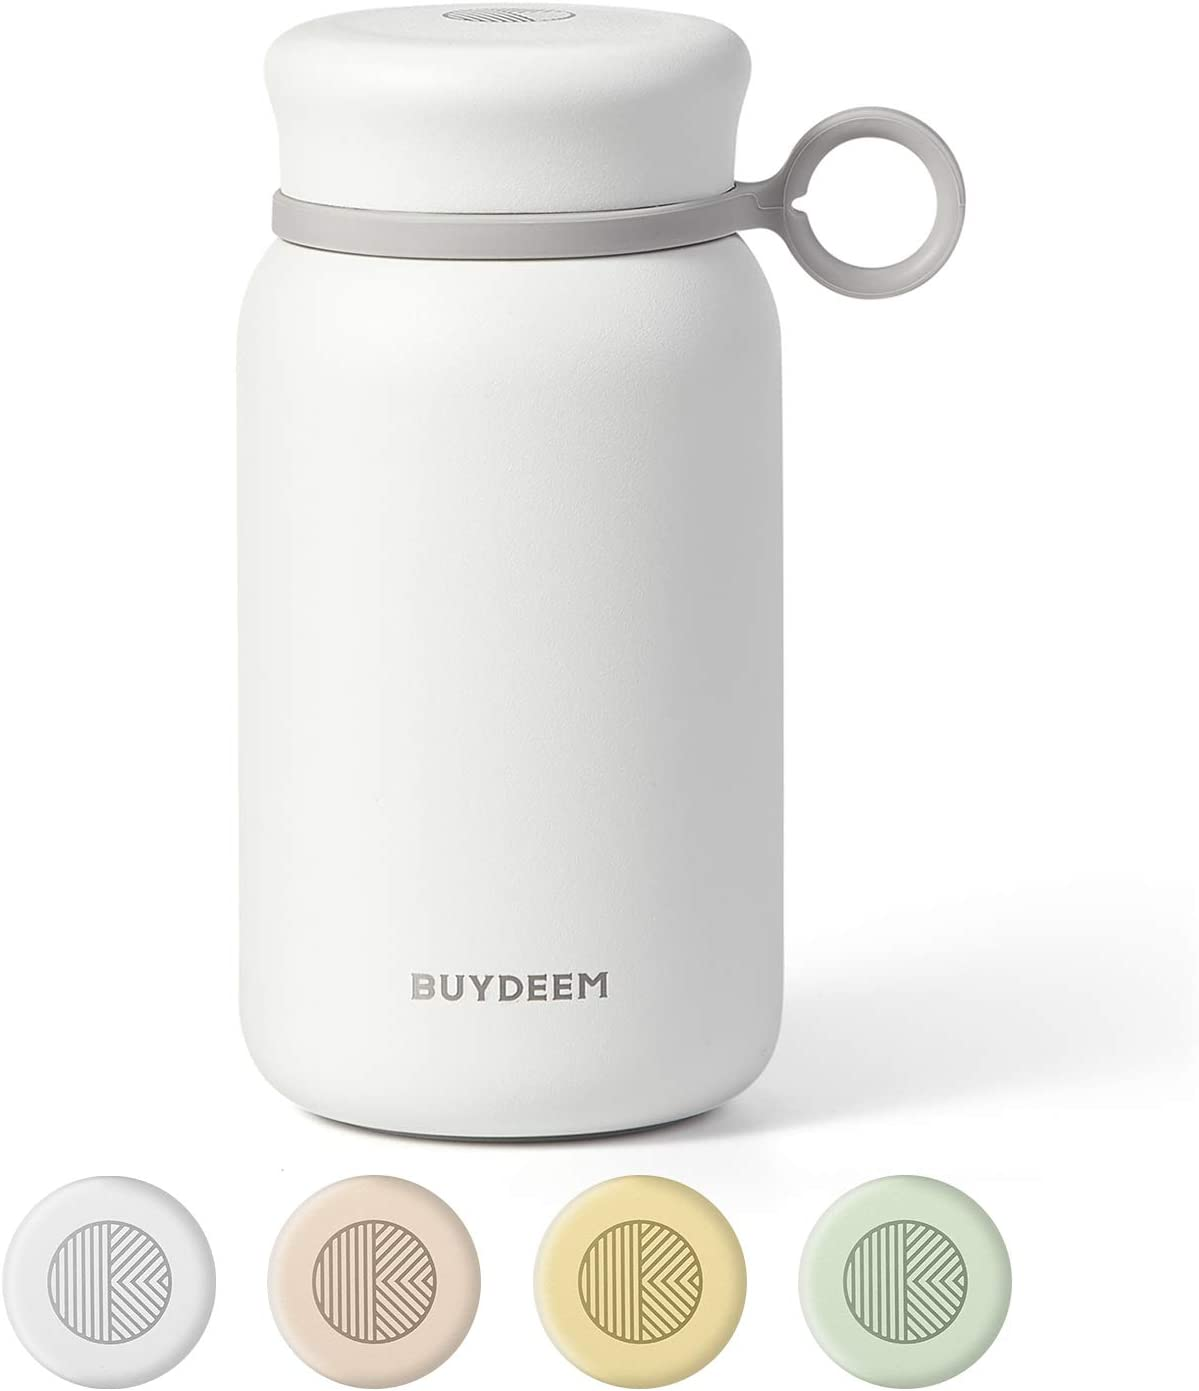 Buydeem CD13 Stainless Steel Mini Travel Mug, Vacuum Insulated Tumbler with Screw-on Lid, Sweat Free, Double Wall Thermos Mug for Home, Office, Outdoor Works, 10oz, Daisy White